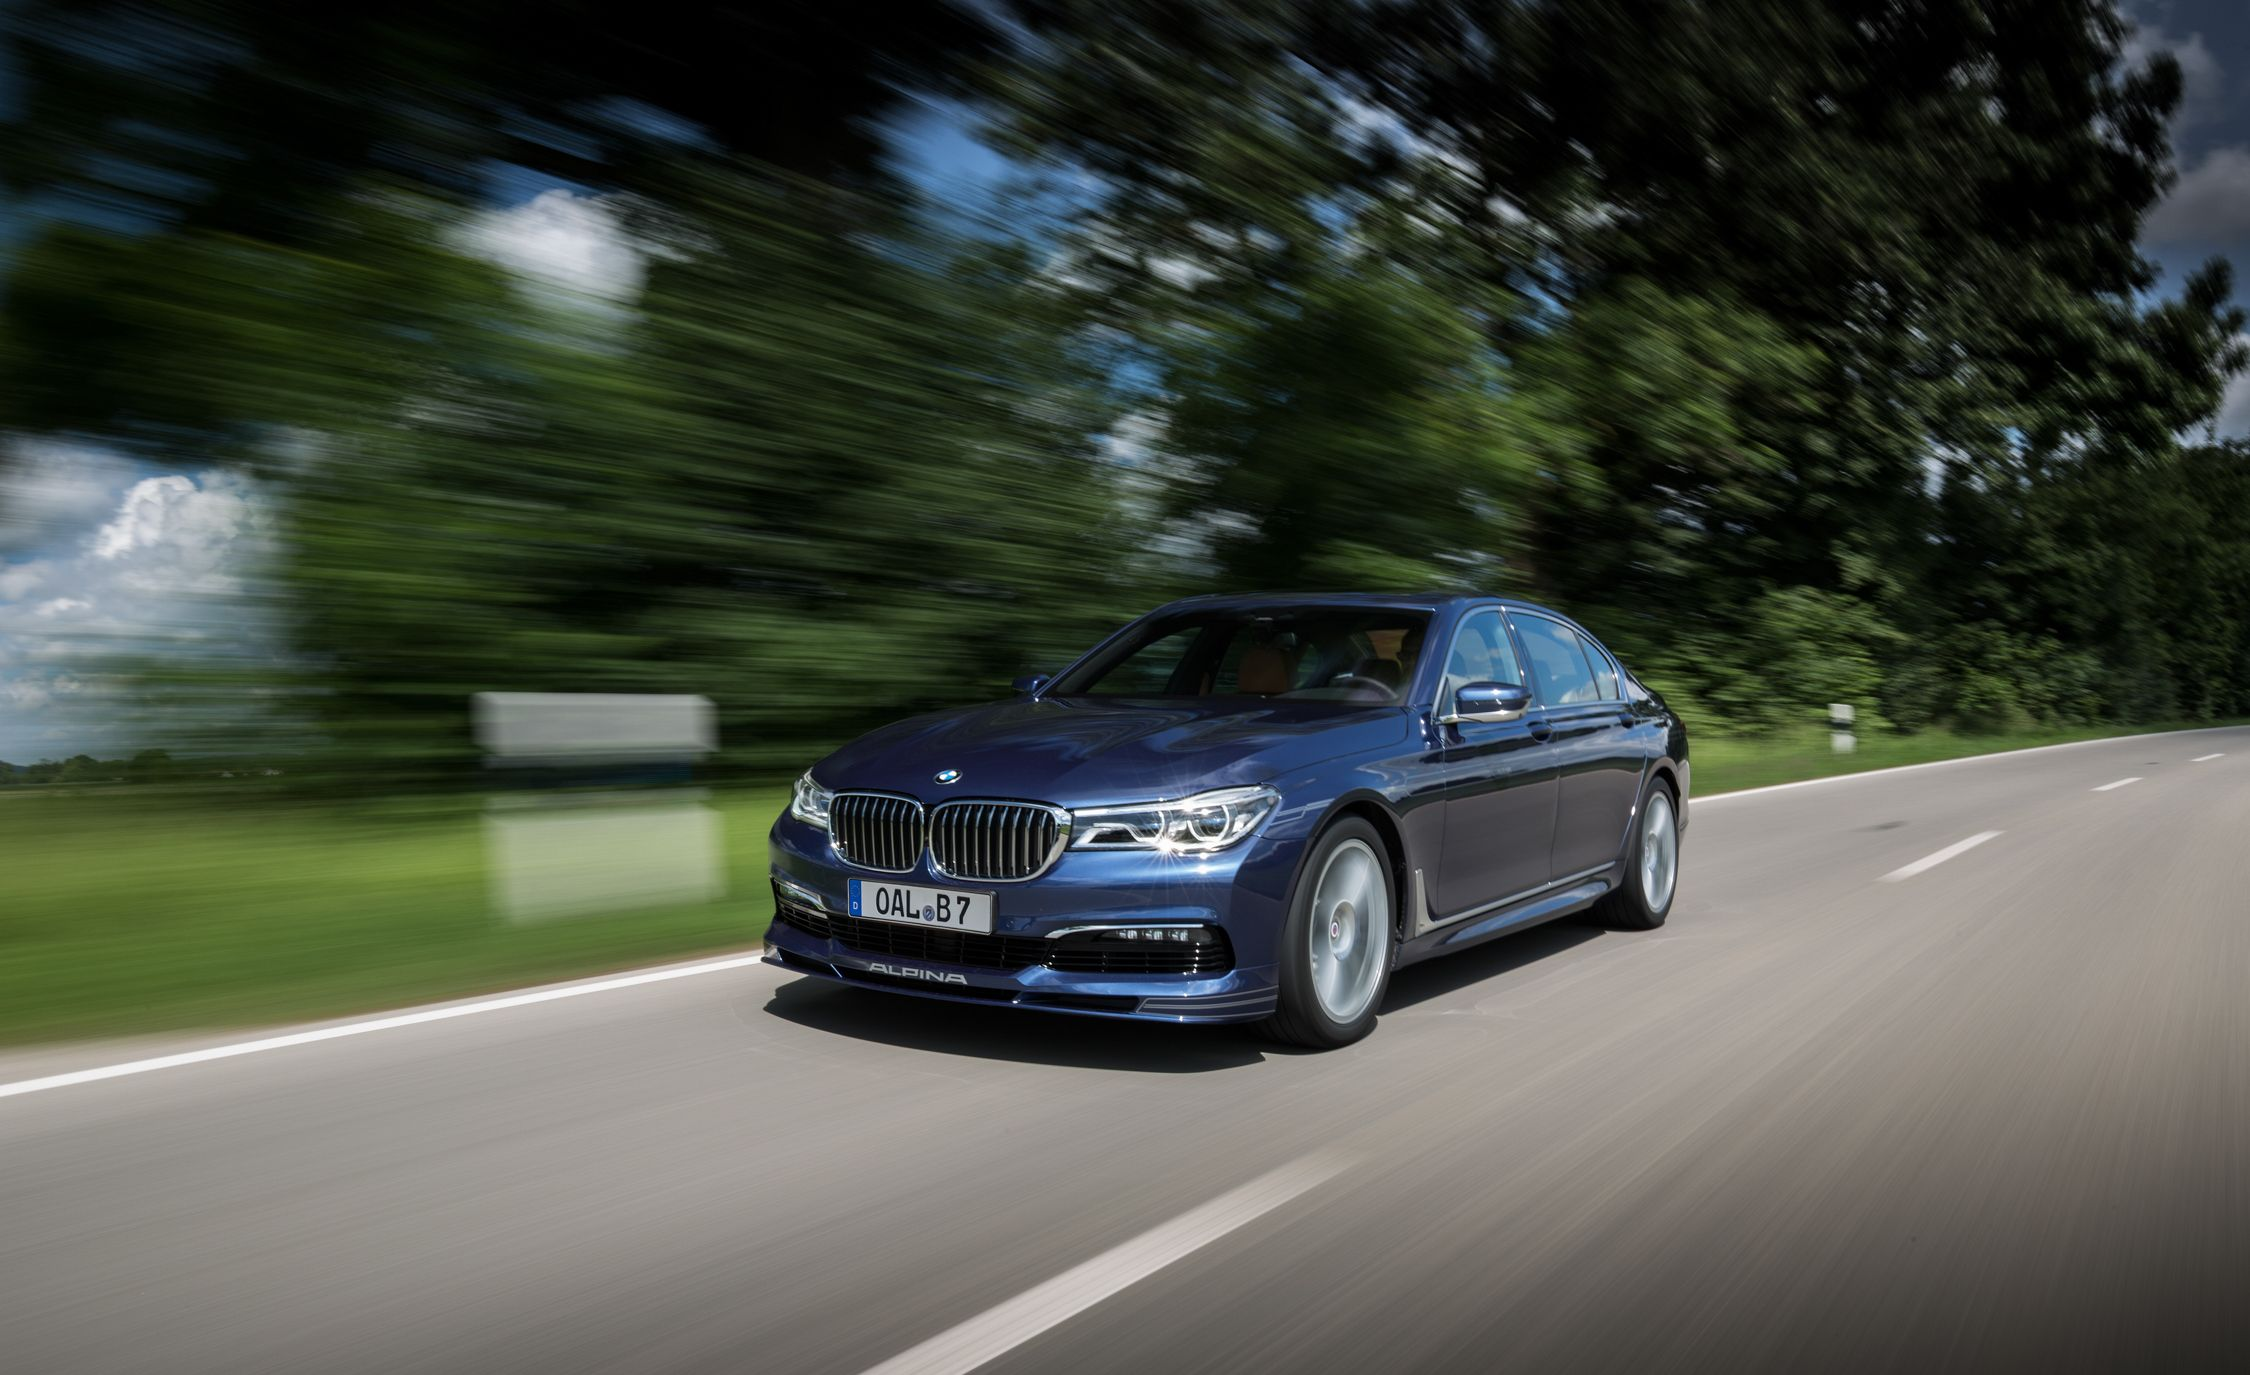 BMW Alpina B First Drive Review Car And Driver - Bmw alpina price range